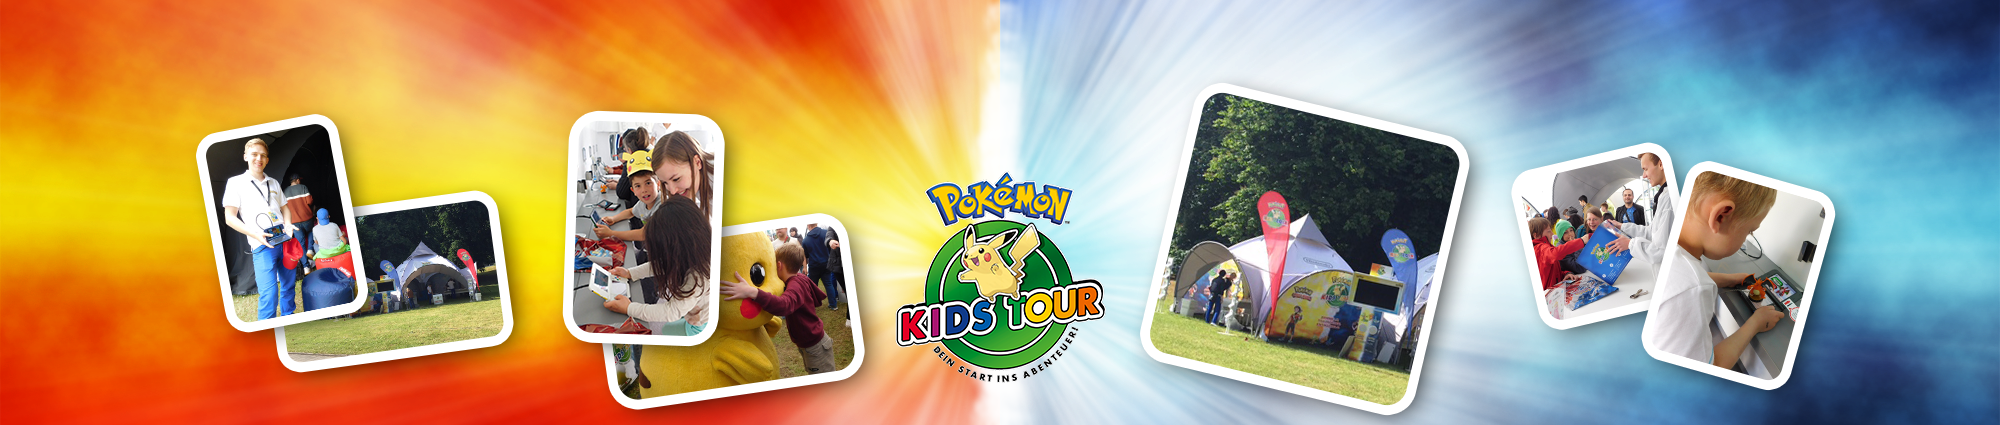 Pokémon Kids Tour 2015